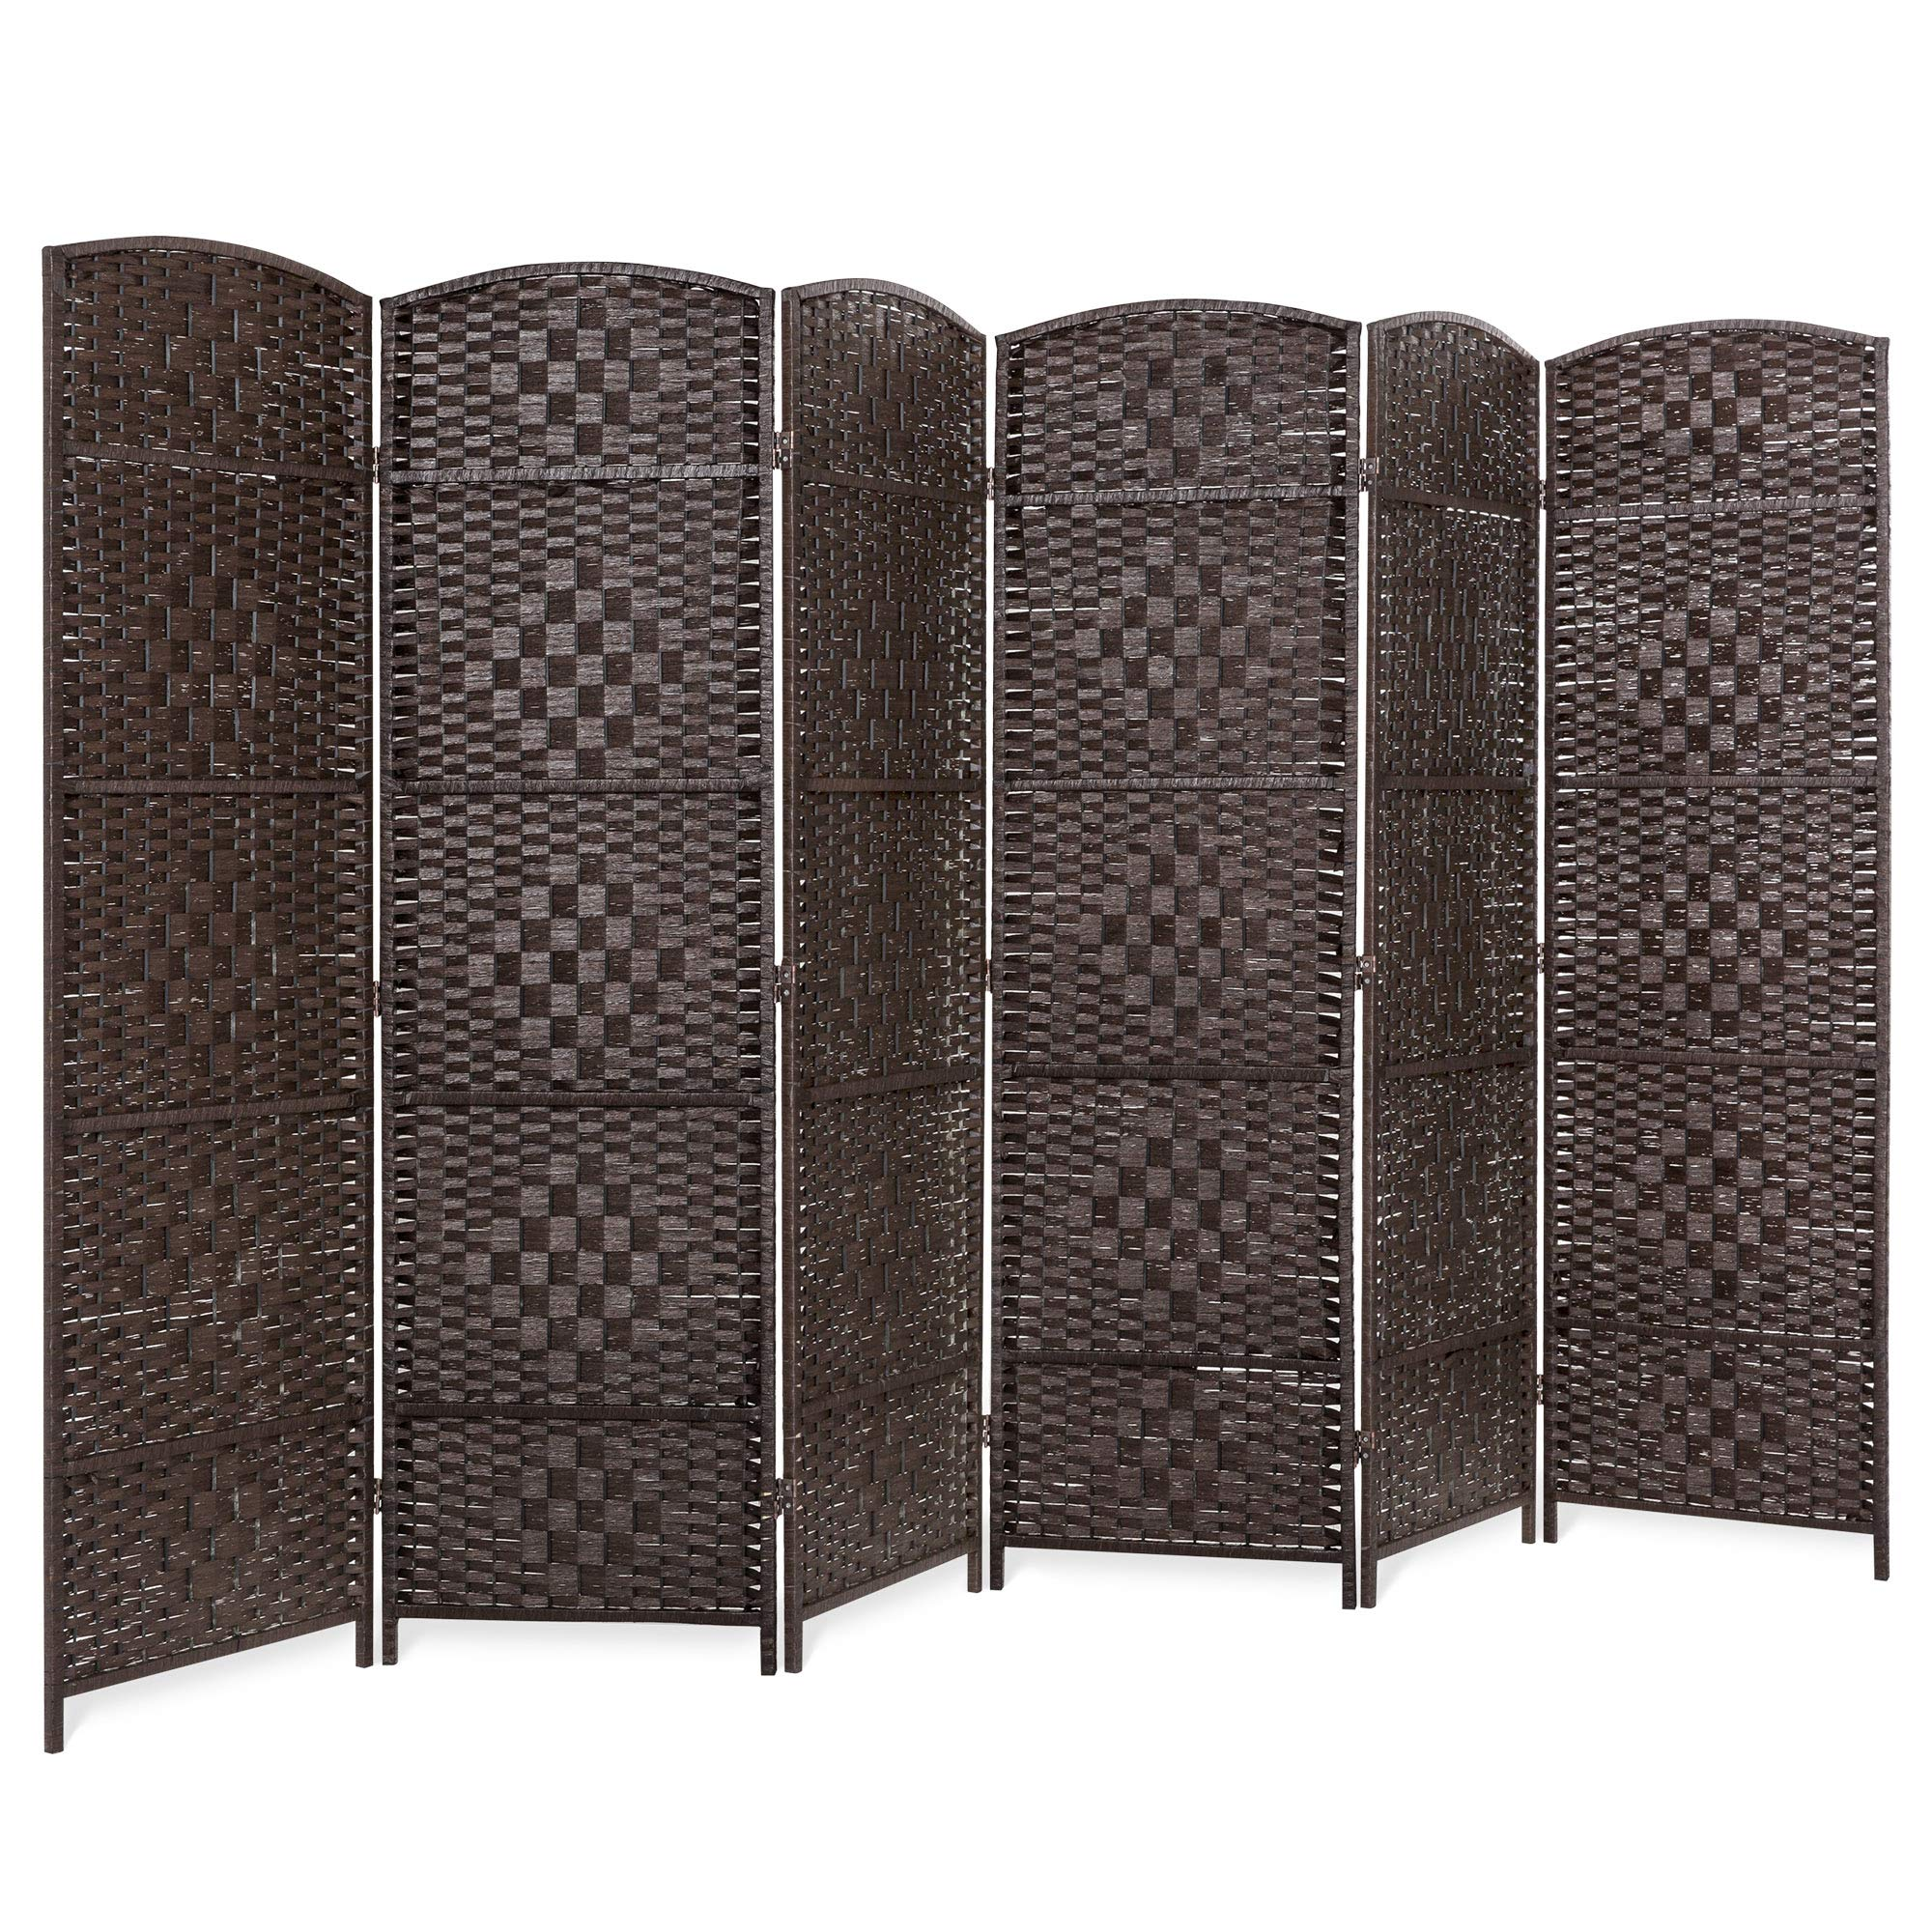 Best Choice Products 70x118in 6-Panel Diamond Weave Wooden Folding Freestanding Room Divider Privacy Screen for Living Room, Bedroom, Apartment w/Two-Way Hinges, Dark Mocha by Best Choice Products